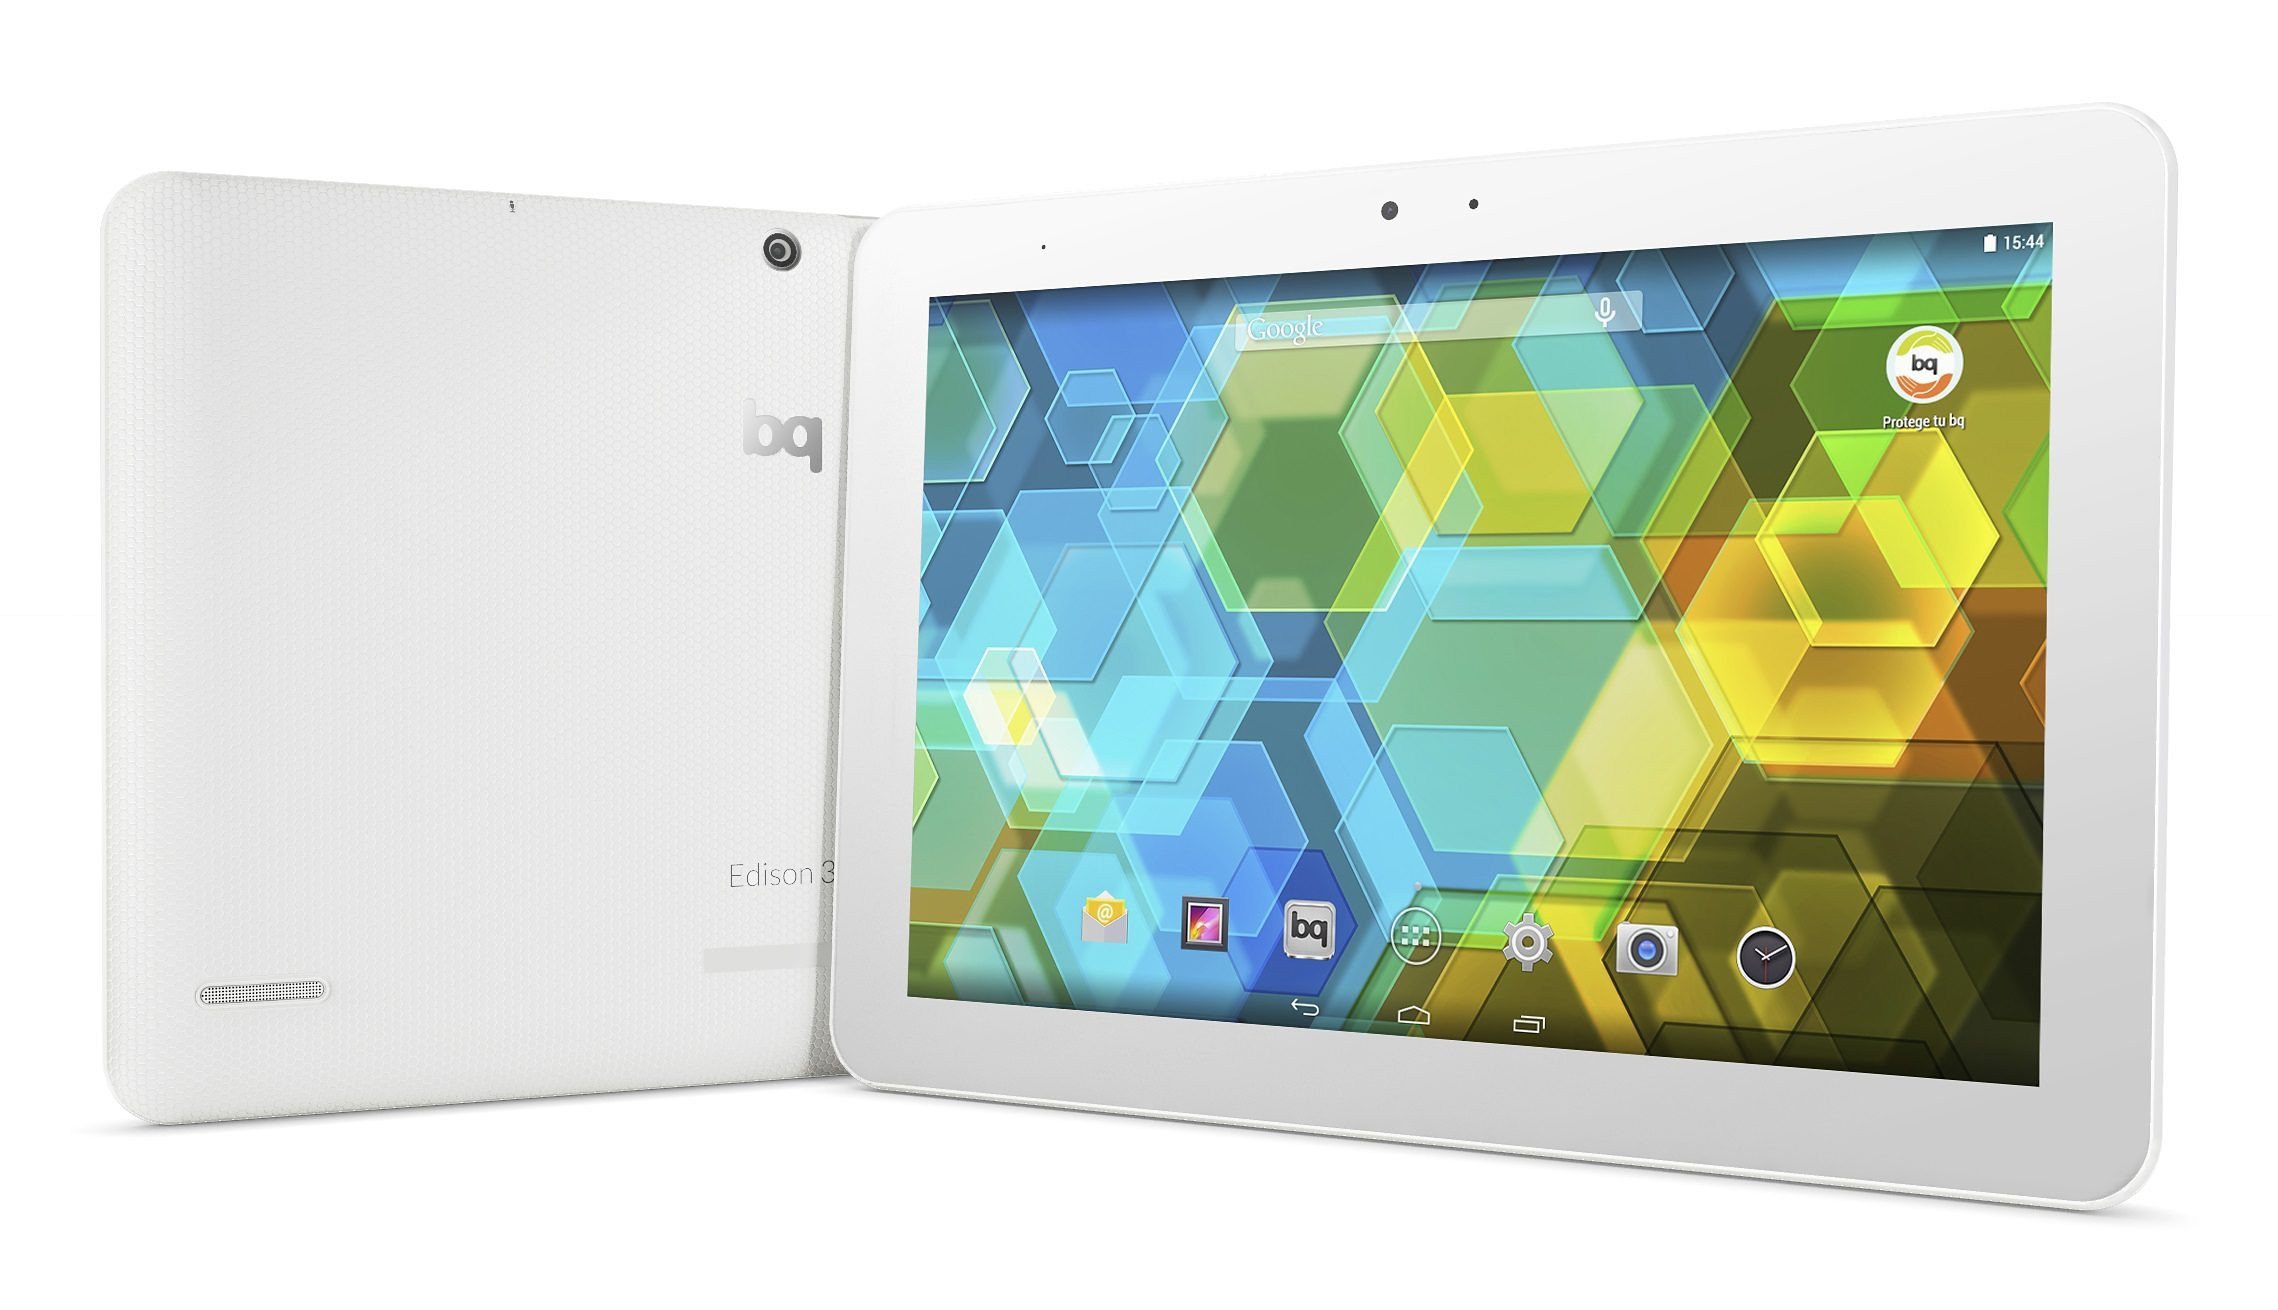 bq Android Tablet »Edison 3 10.1 WiFi 16+1 GB«